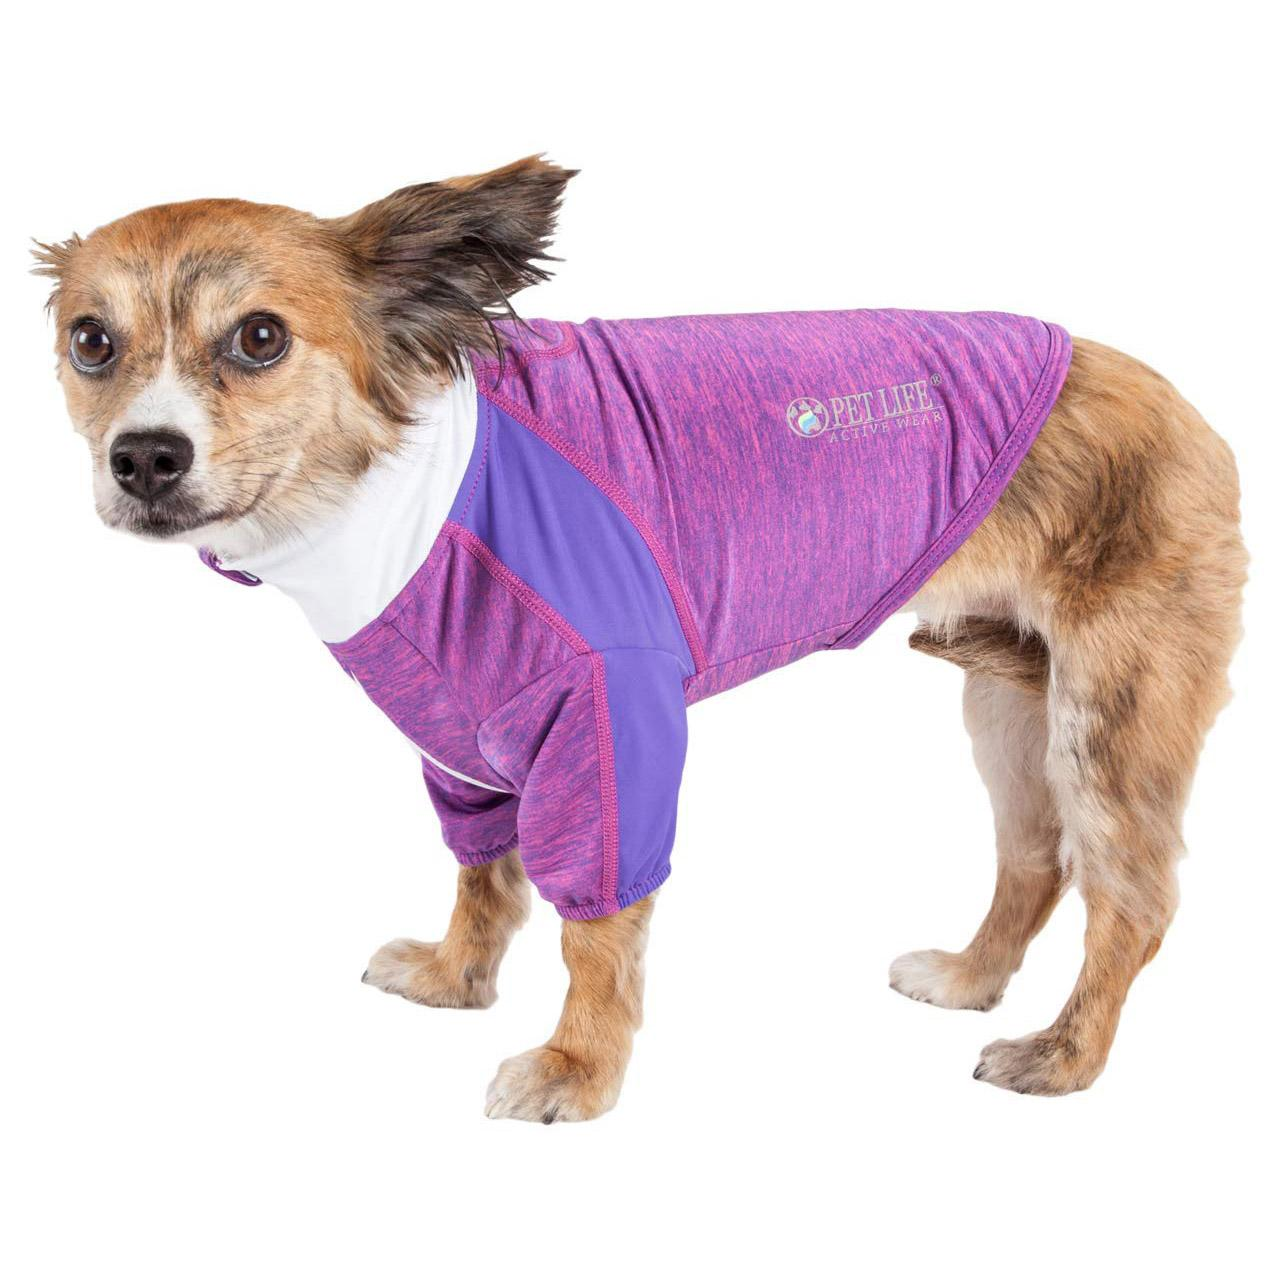 Pet Life ACTIVE 'Chewitt Wagassy' Performance Long Sleeve Dog T-Shirt- Lavender